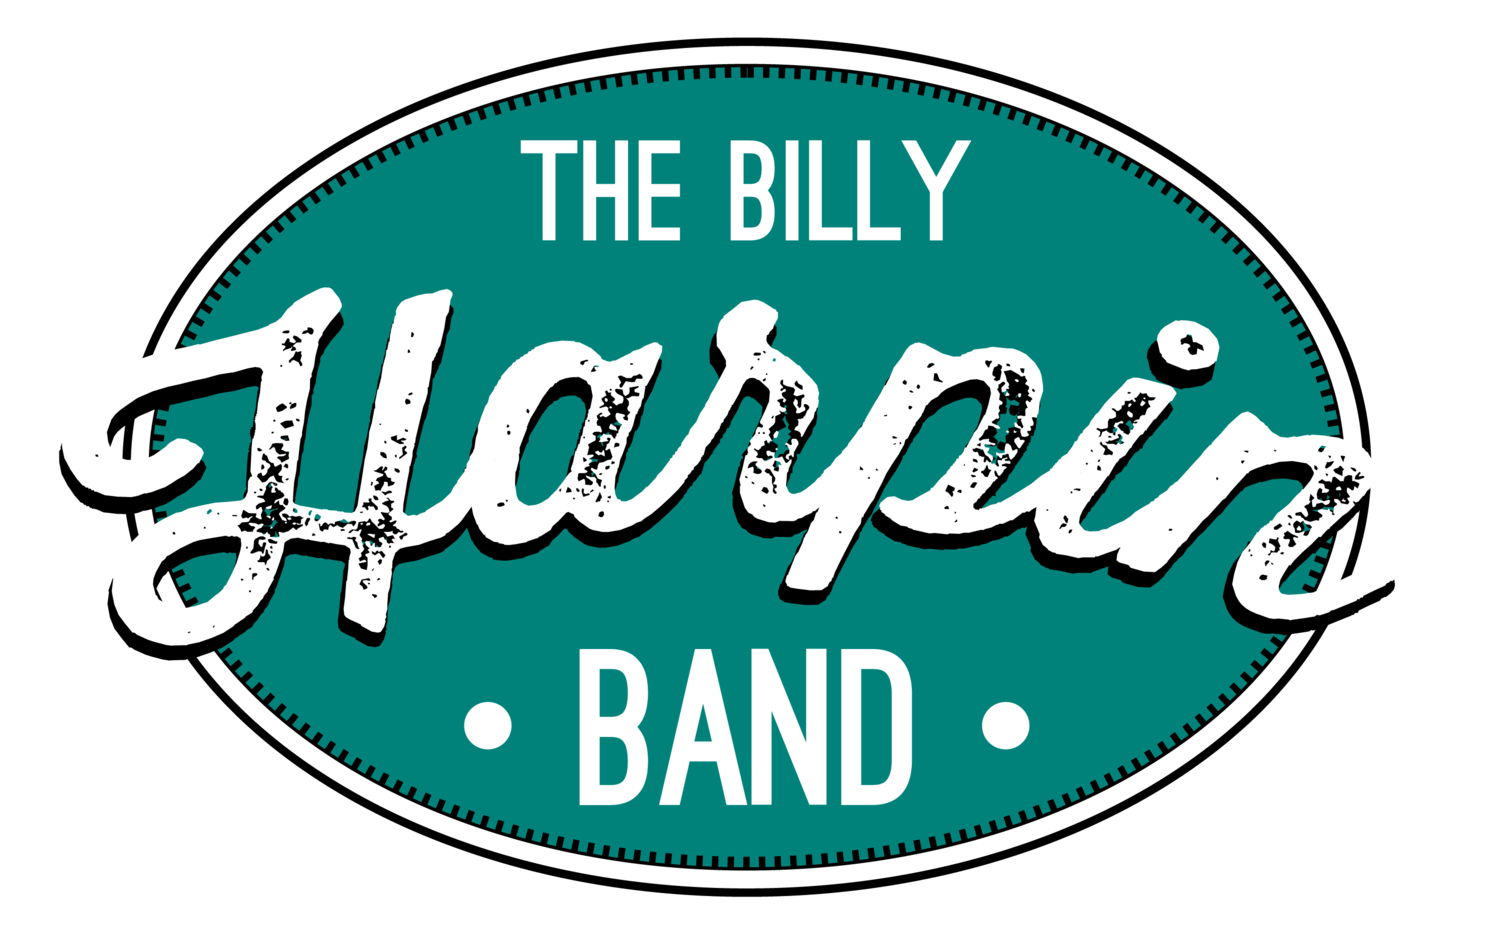 The Billy Harpin Band